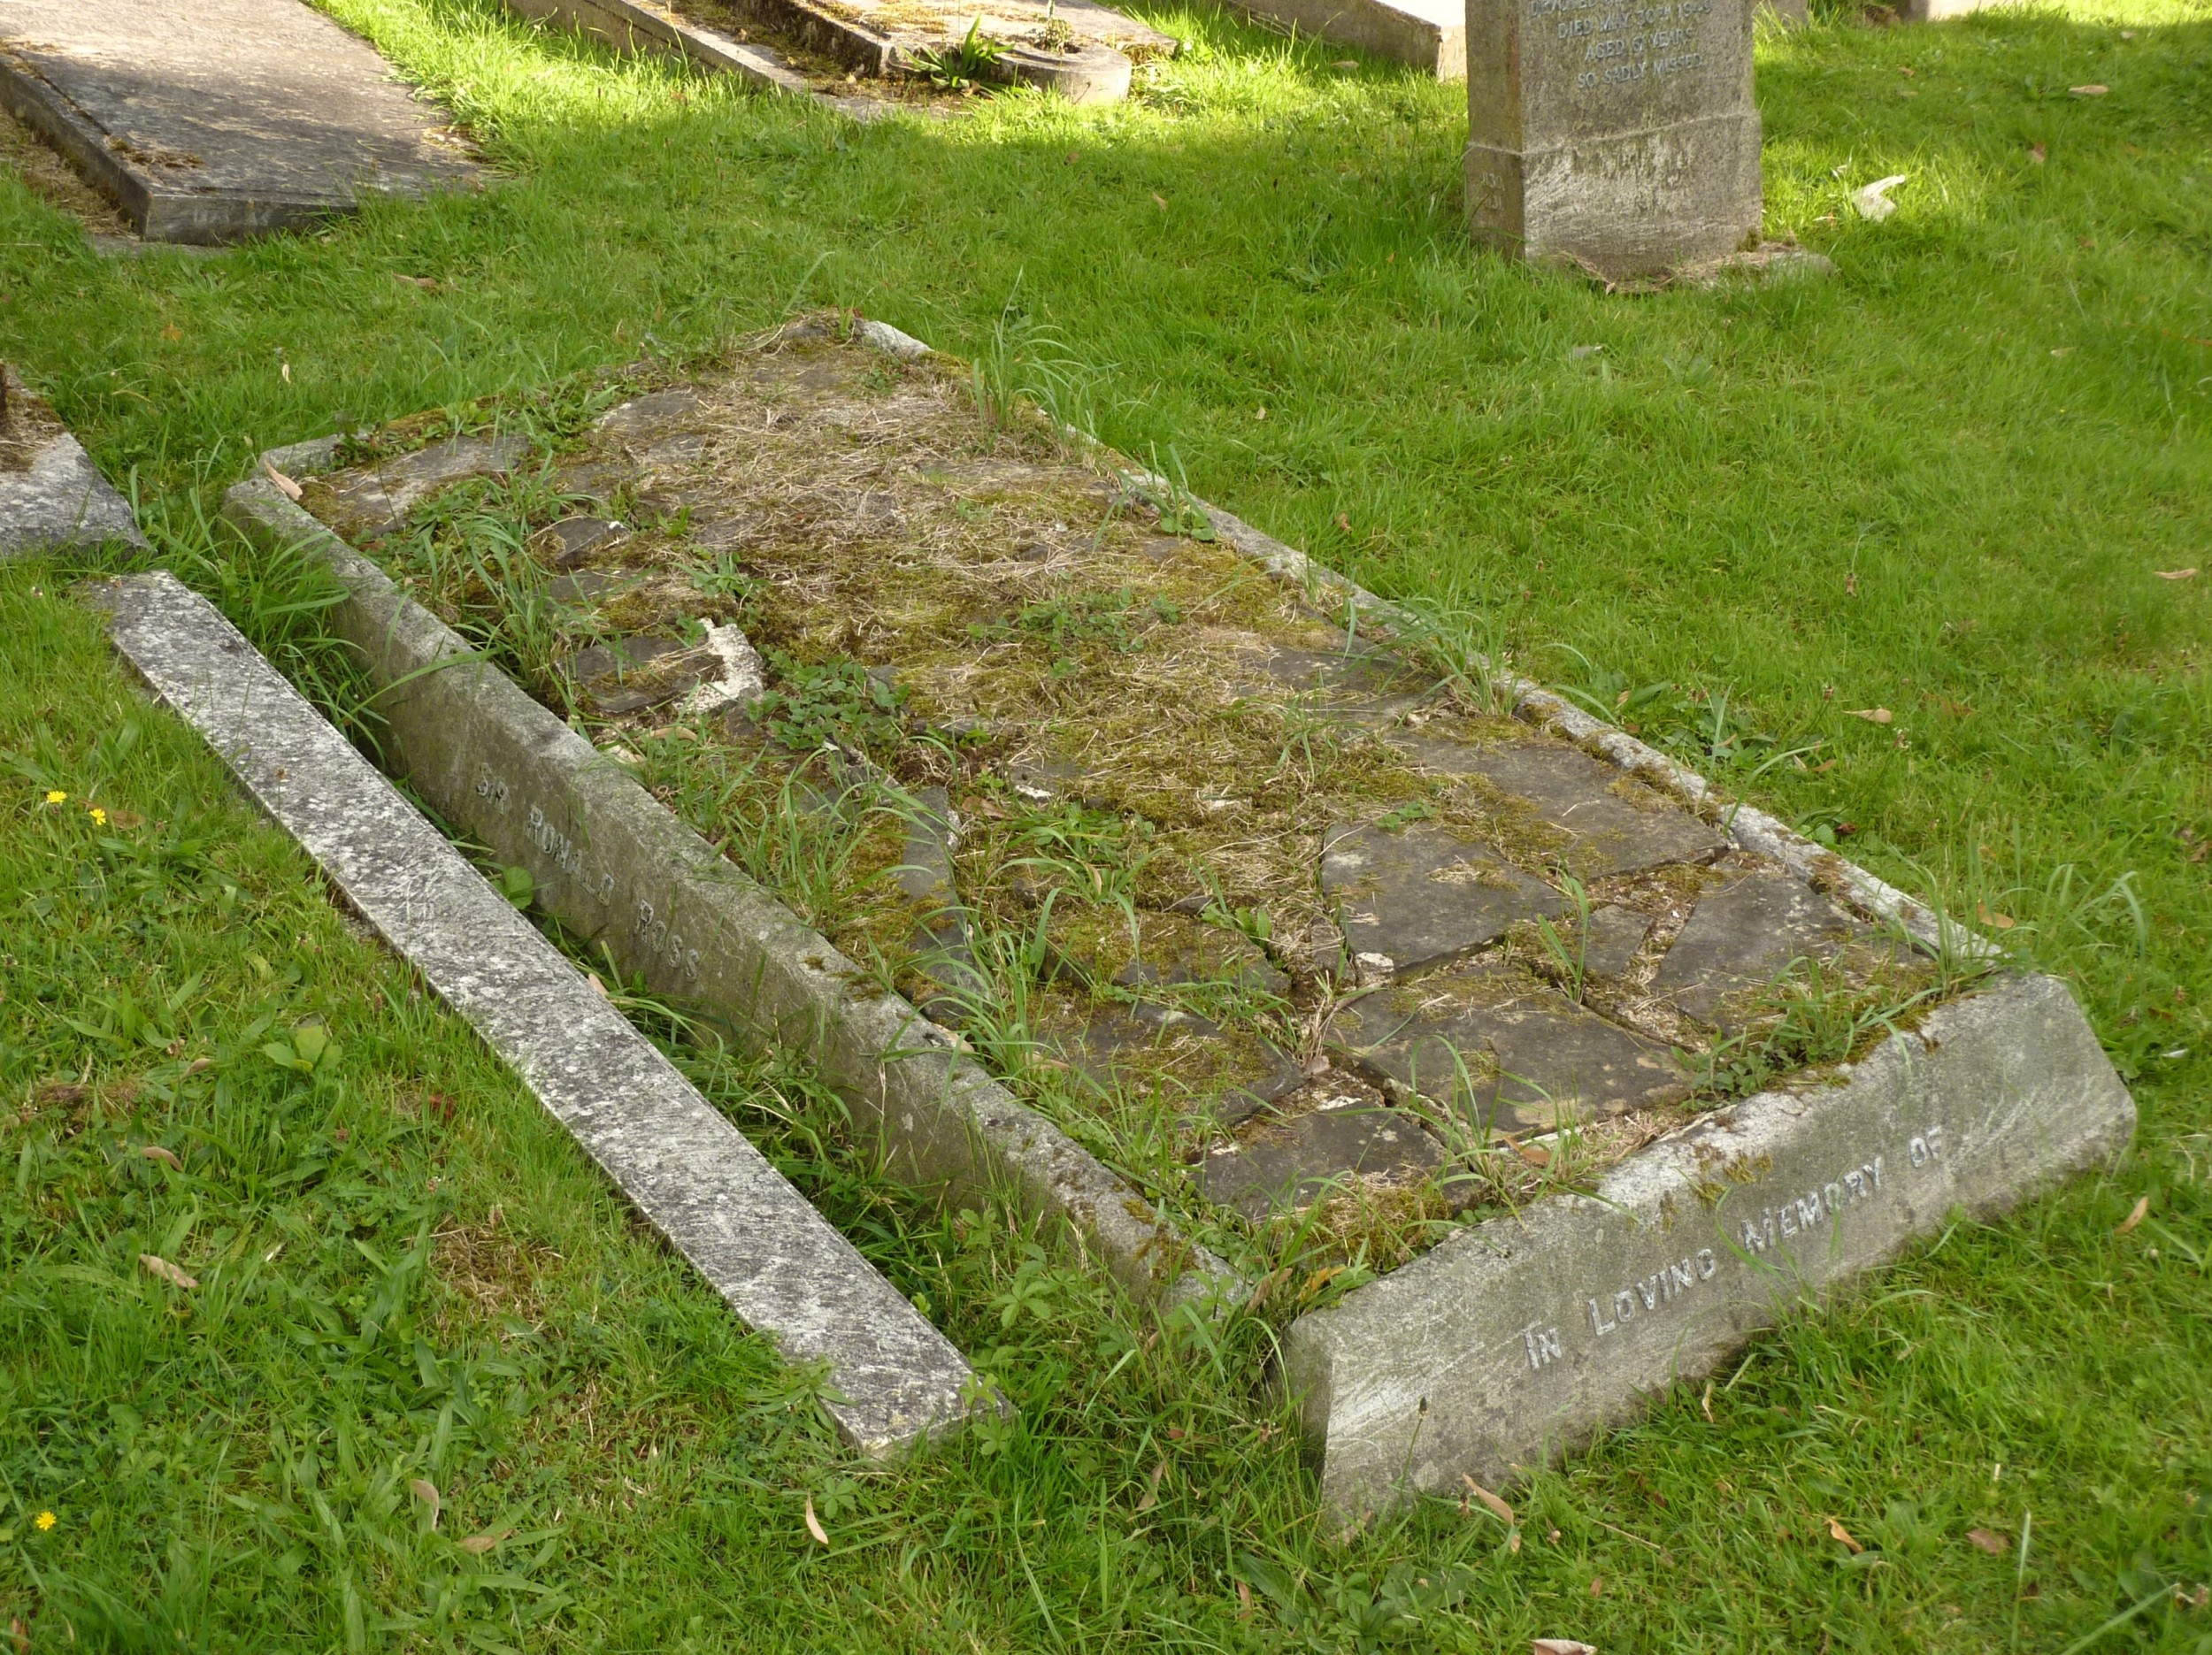 A horizontal gravestone, badly dilapidated and with grass growing among the cracks